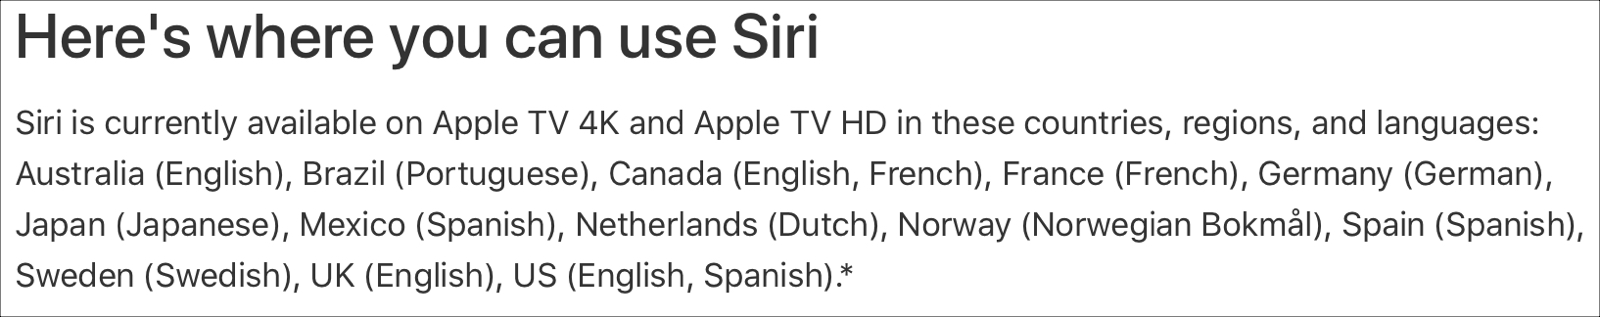 Apple Siri Supported Regions